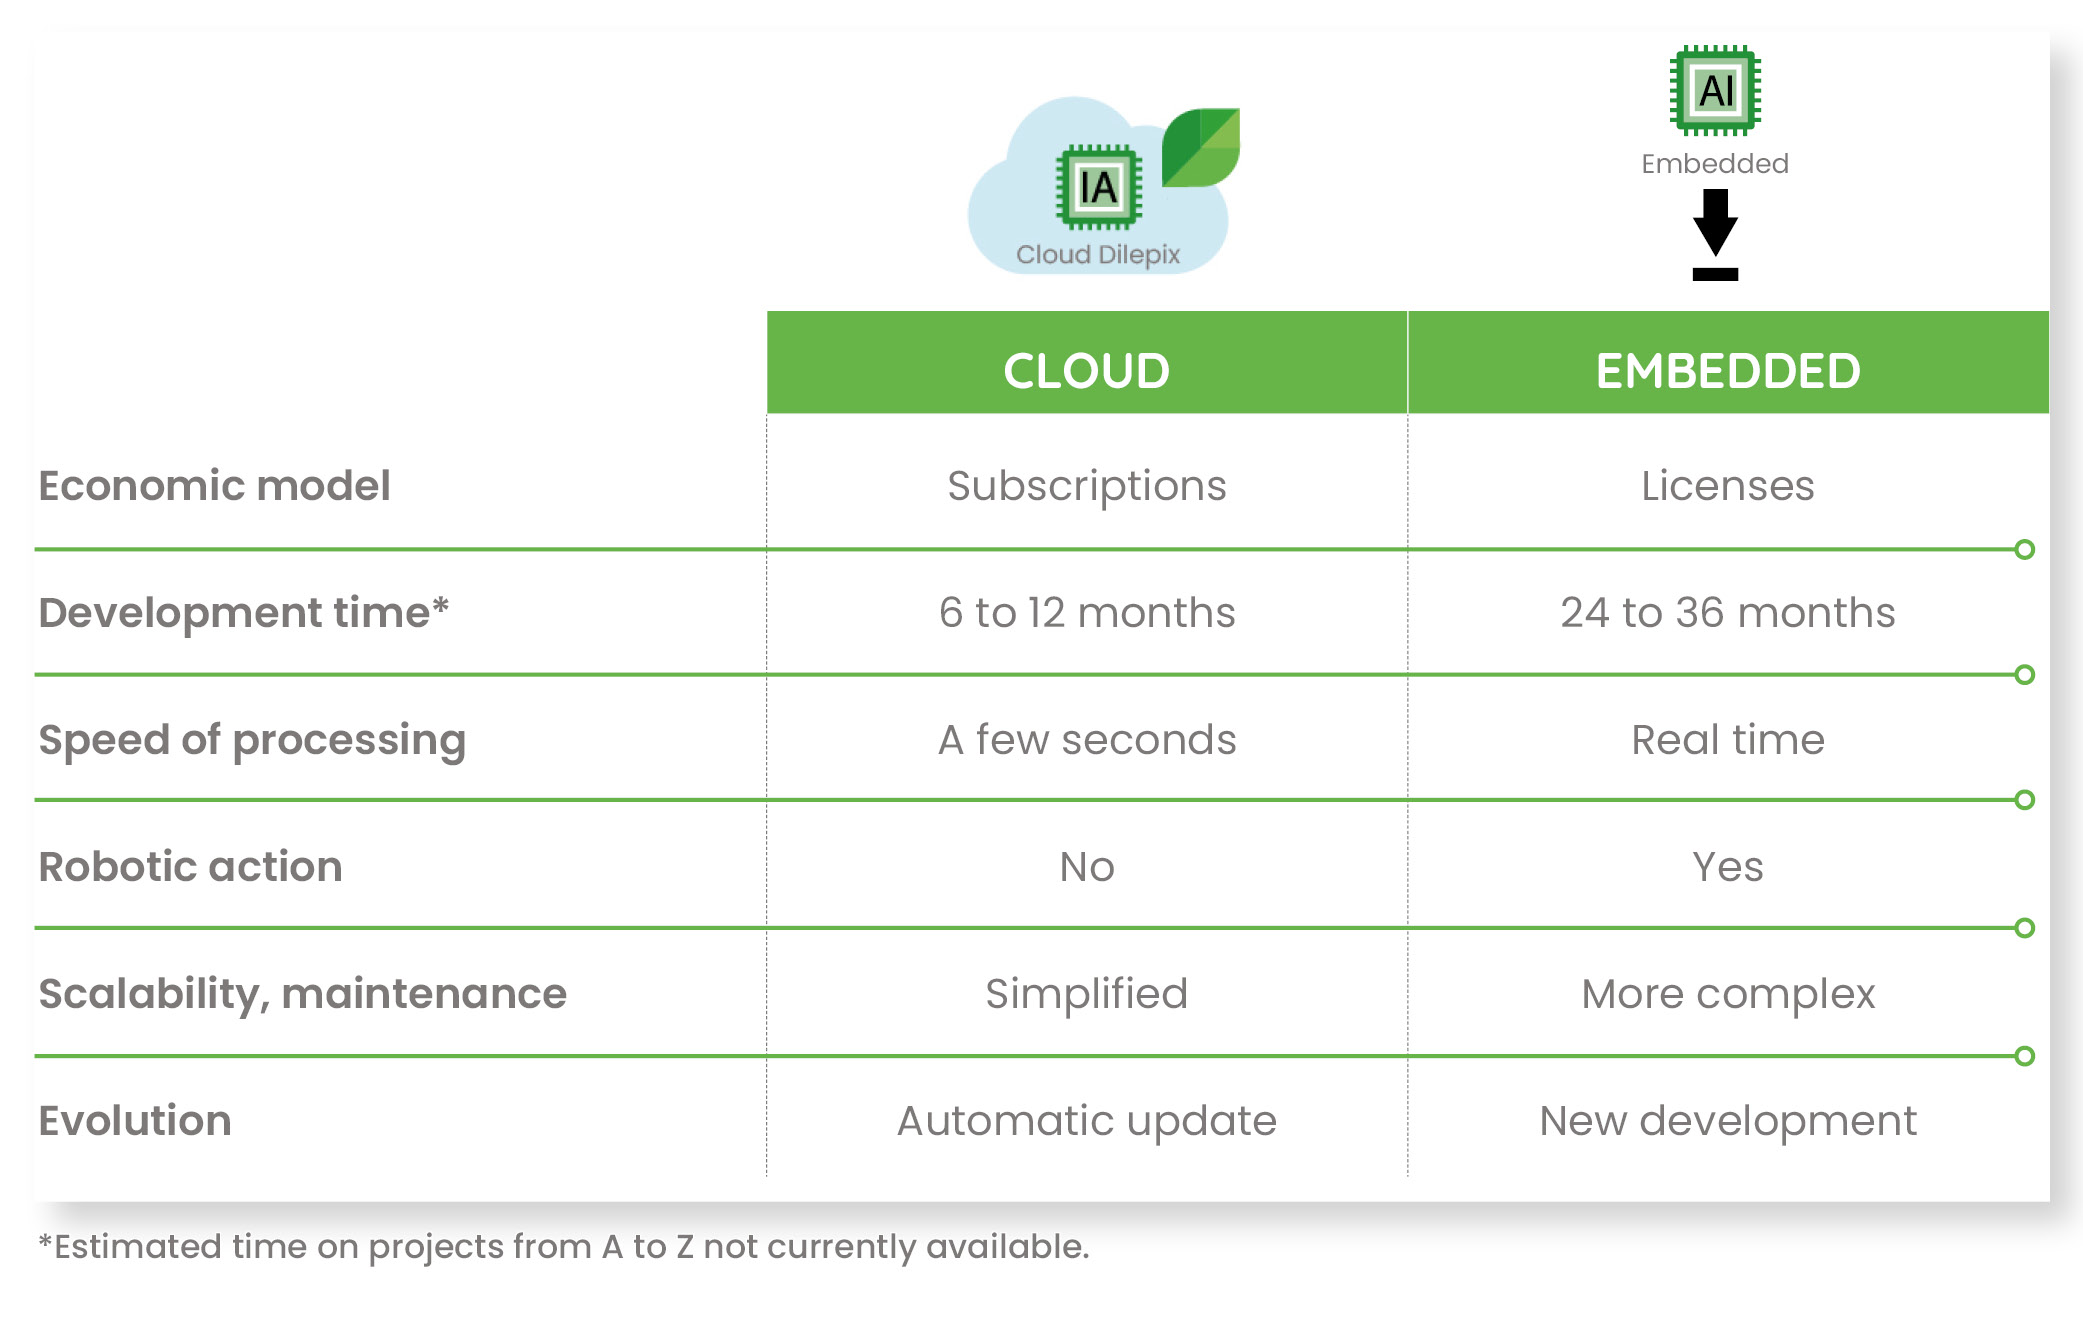 comparison between cloud and embedded